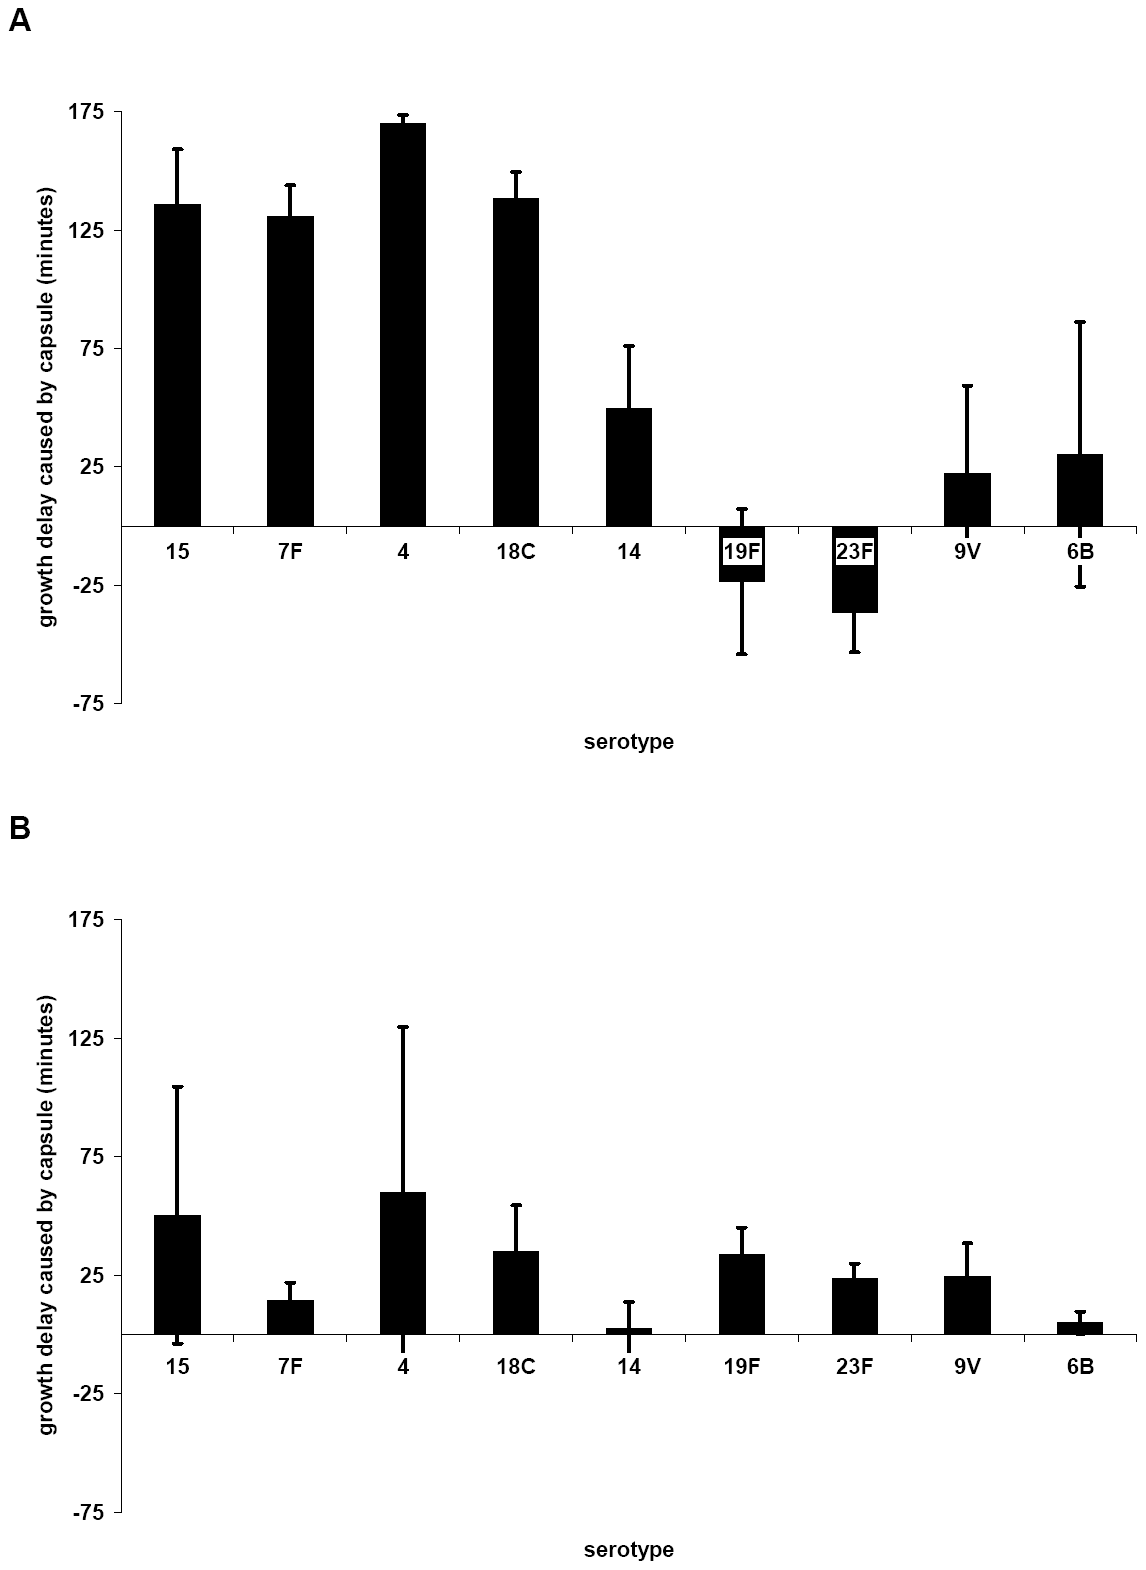 Influence of capsule serotype on length of lag phase of growth in MLM (A) and BHI+FCS (B).